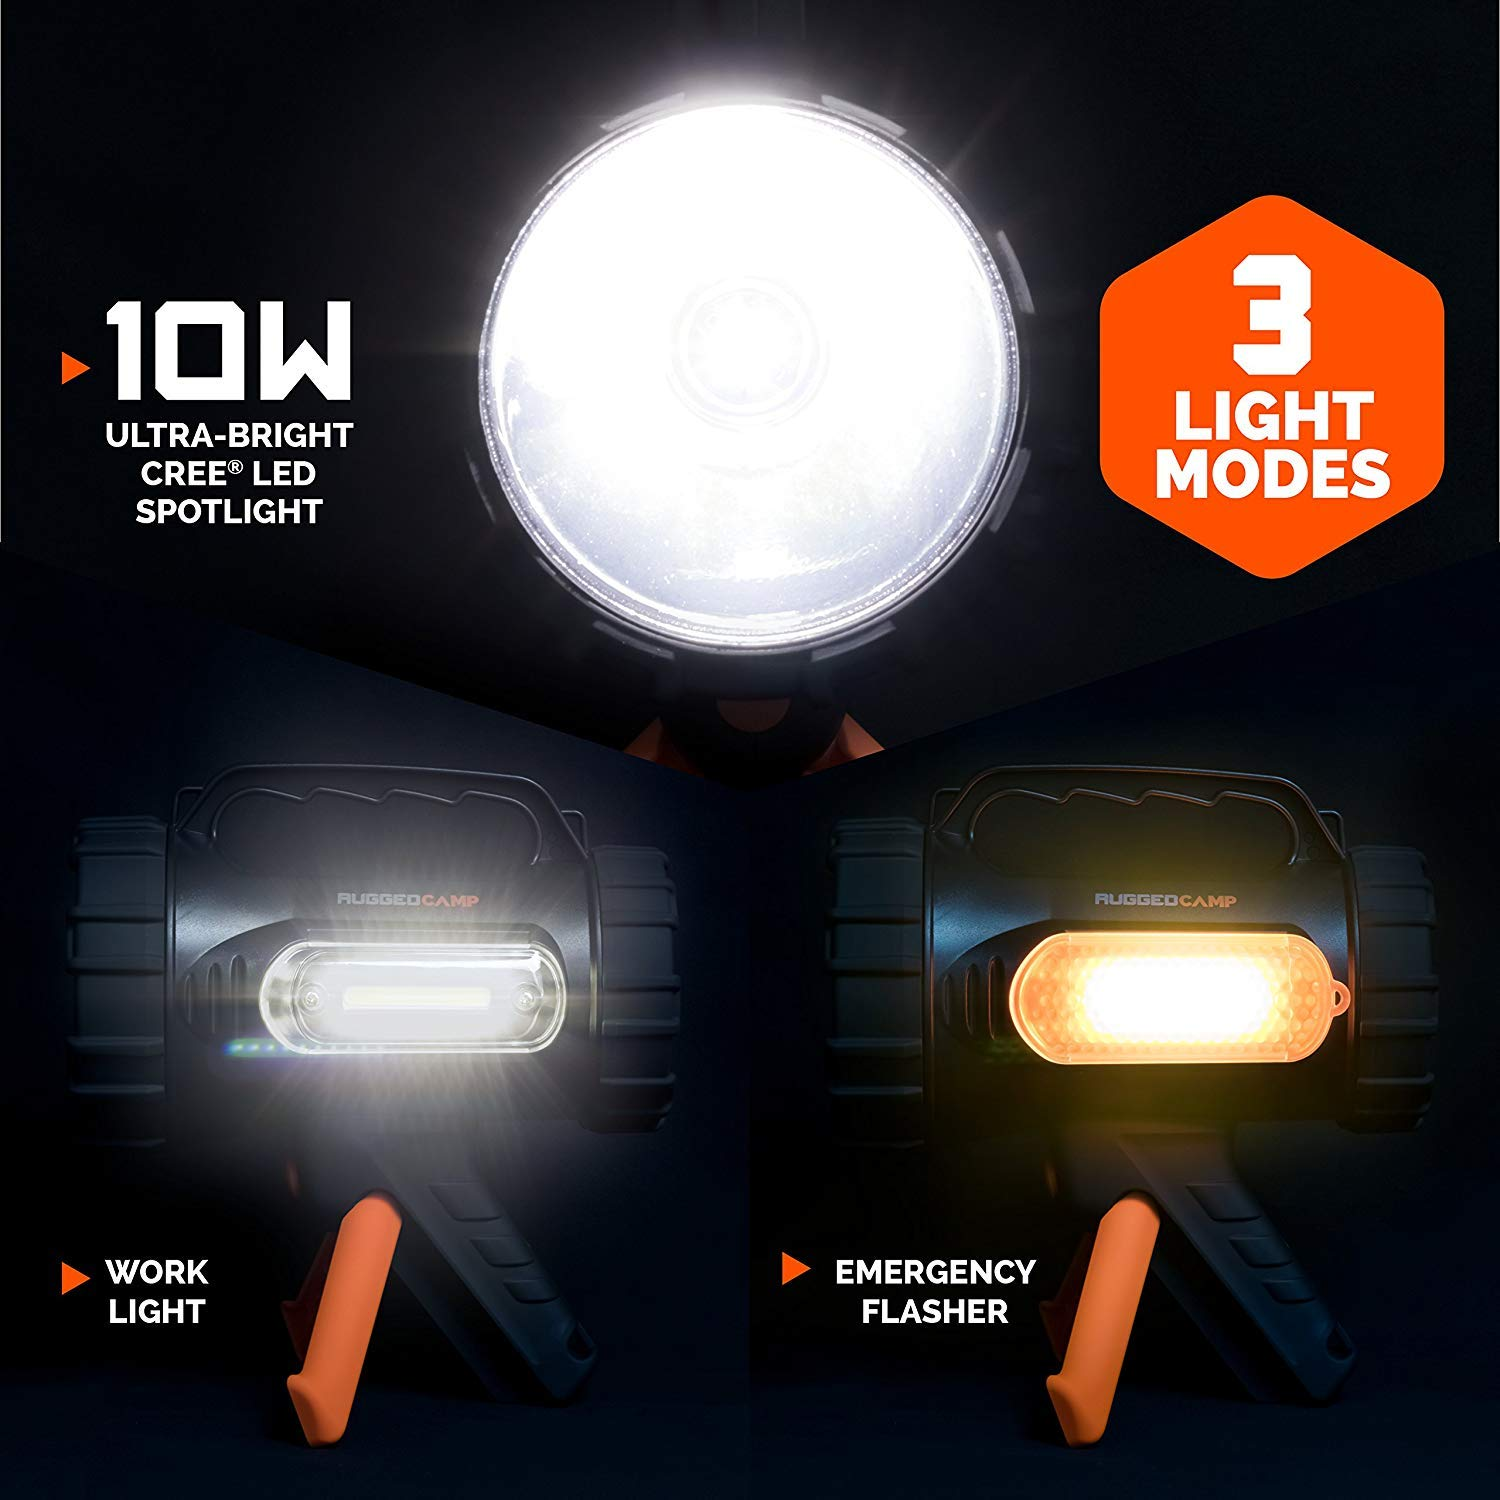 Rugged Camp Titan X10 Rechargeable Spotlight - 1000 Lumens - High Powered 10W LED Bright Flashlight - Work Light & Tripod - Perfect for Camping, Hiking, Hunting, Emergencies & Outdoors (Black/Orange) by Rugged Camp (Image #4)